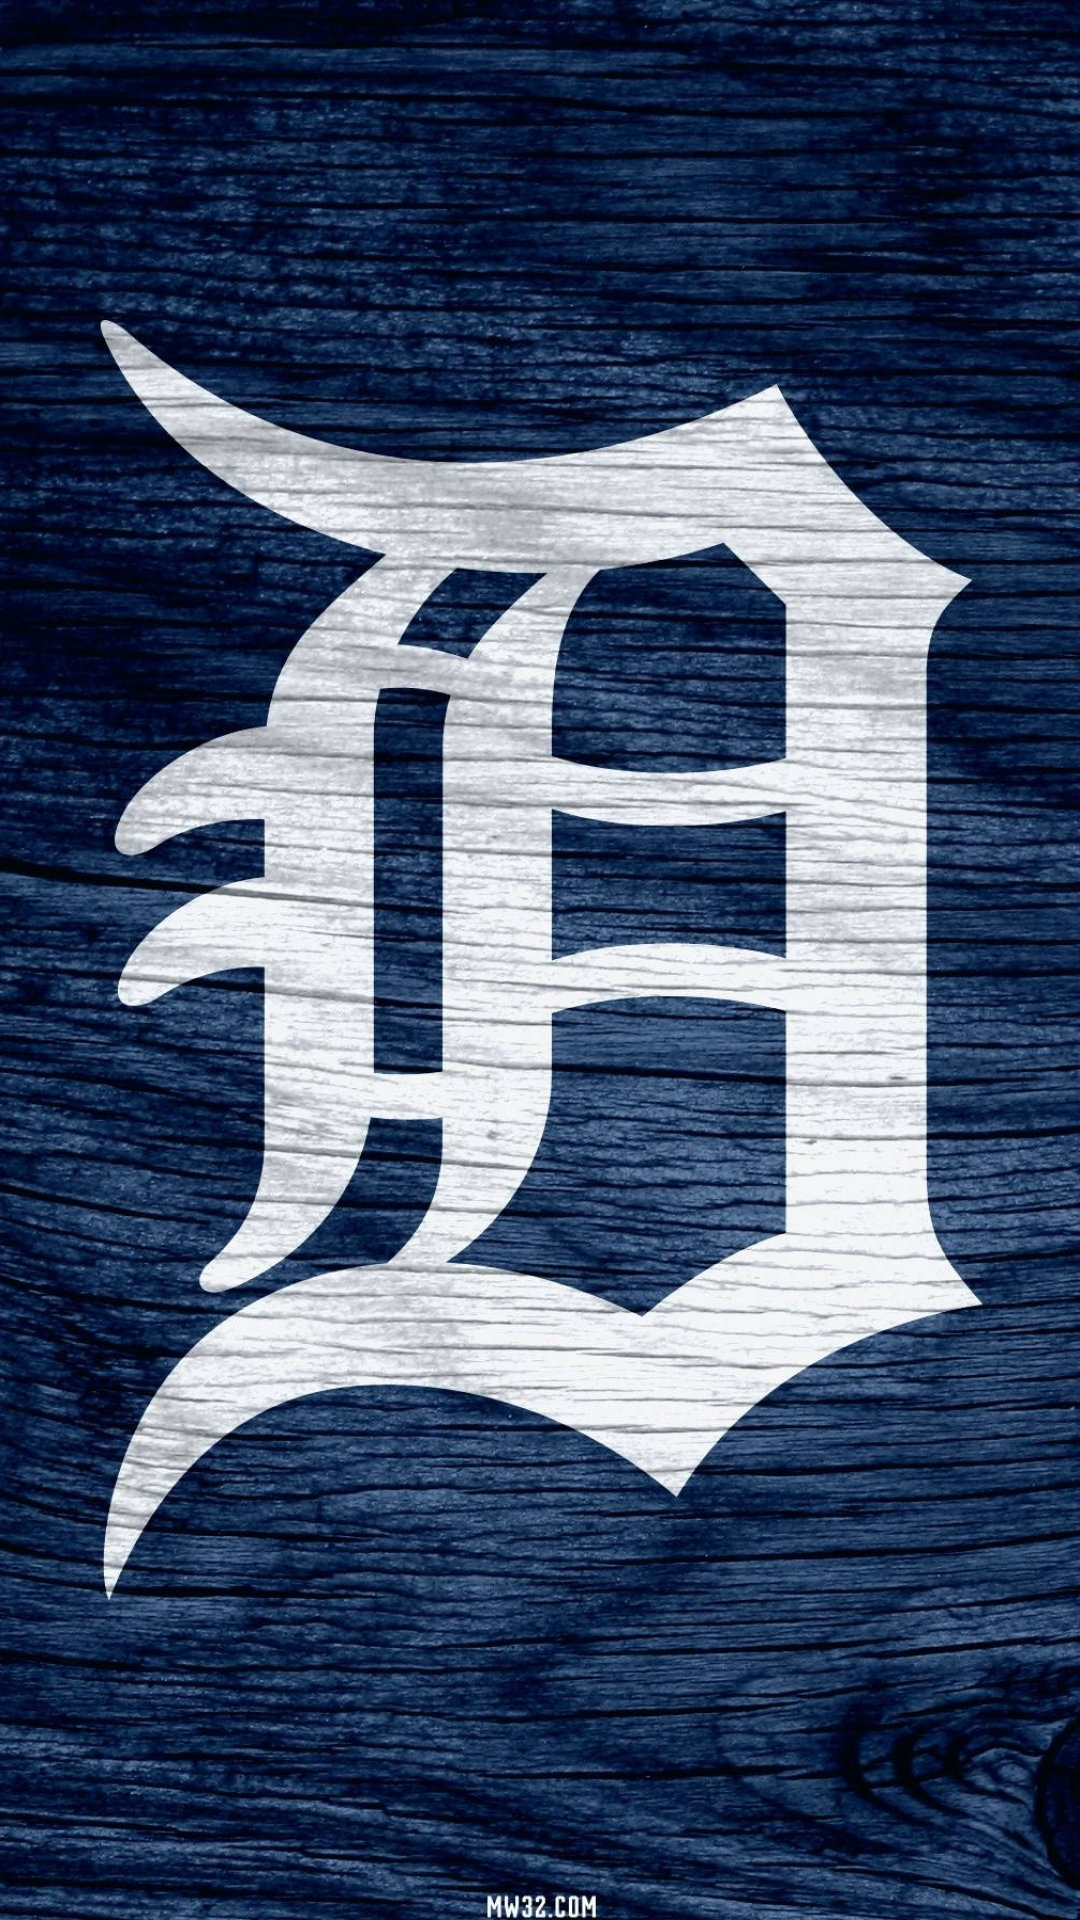 1080x1920 - Detroit Tigers Wallpapers 3